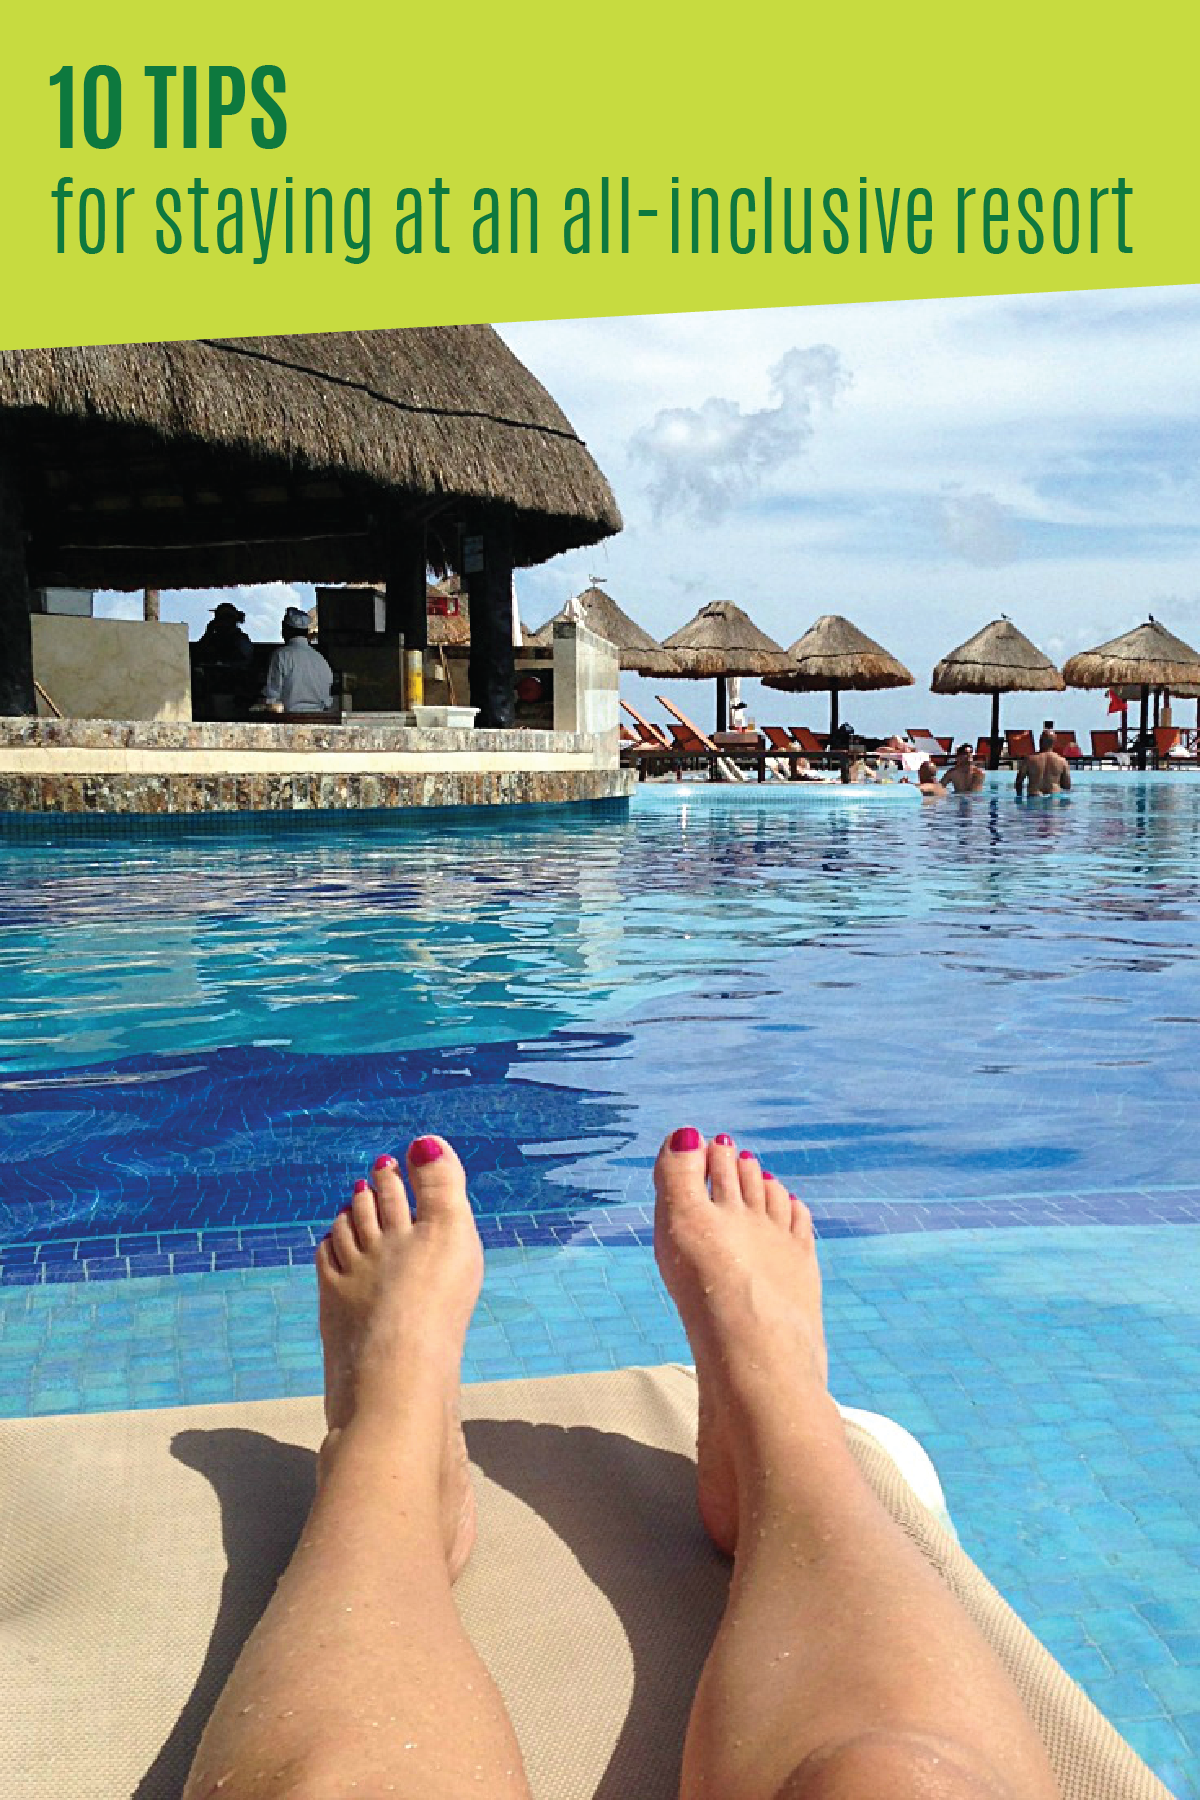 10 Tips for Staying at an AllInclusive Resort With